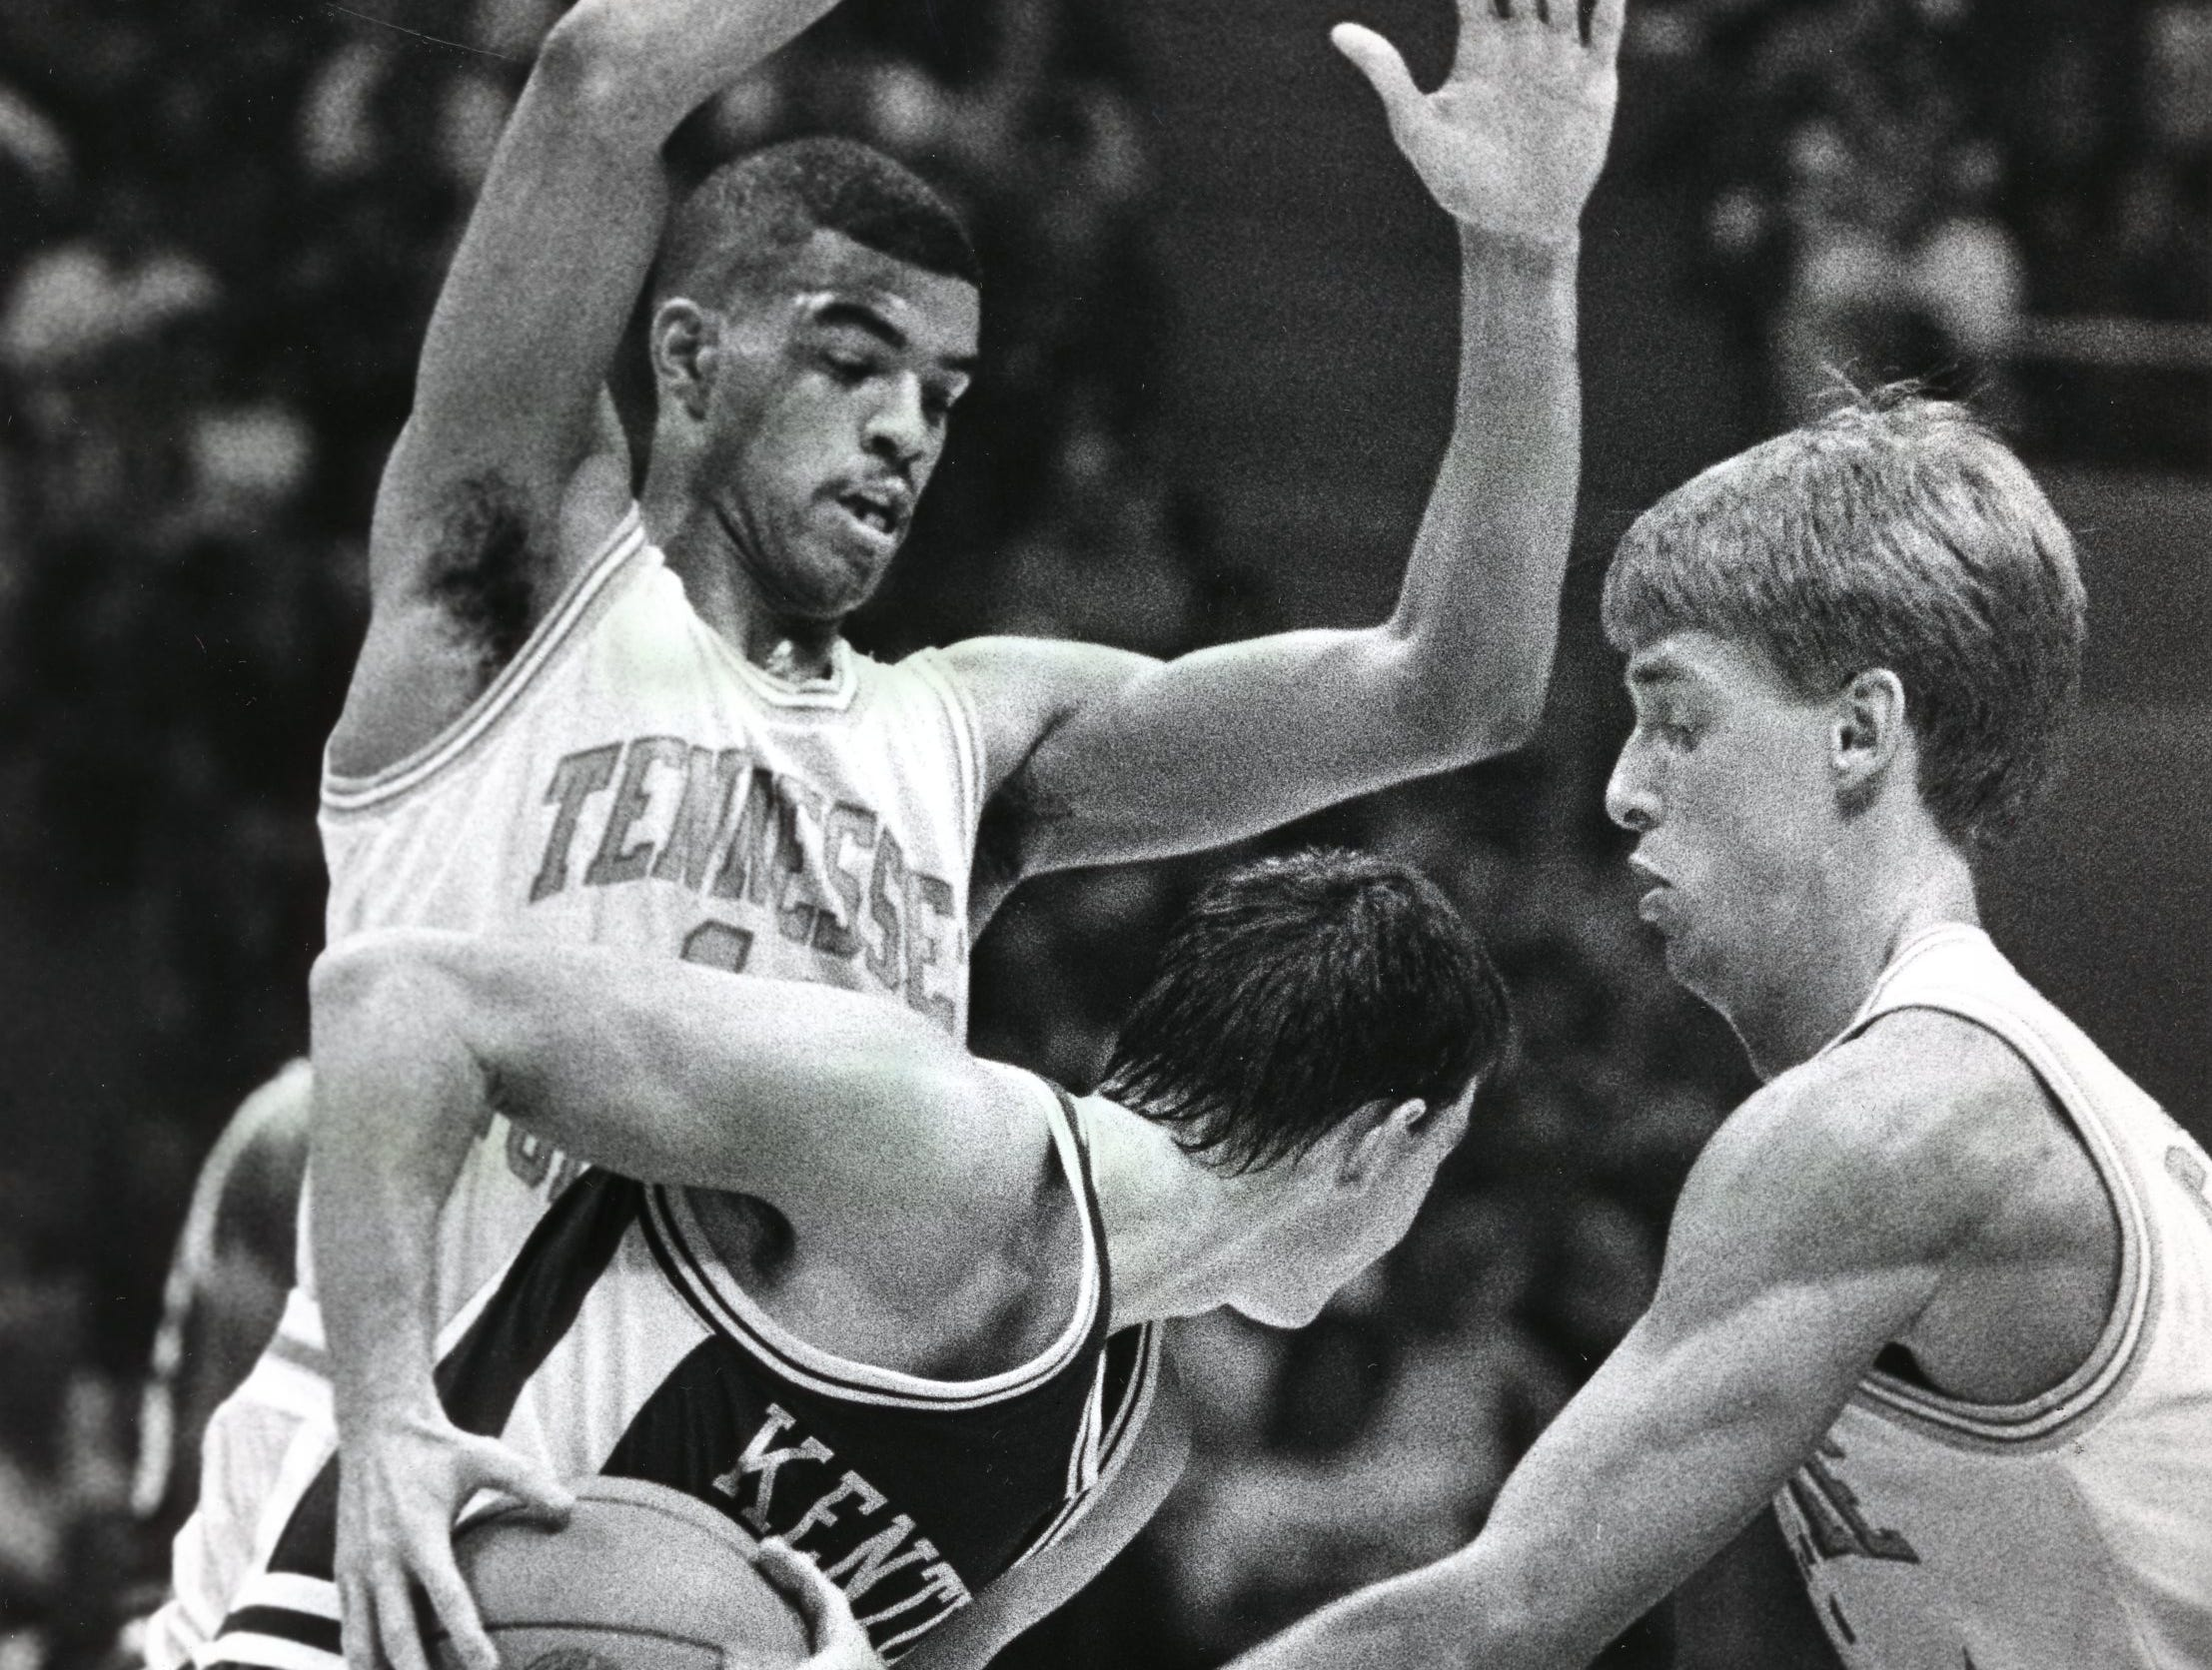 Tennessee's Clarence Swearengen and Mark Griffin defends Kentucky's Jean Sutton in a January 1989 game.